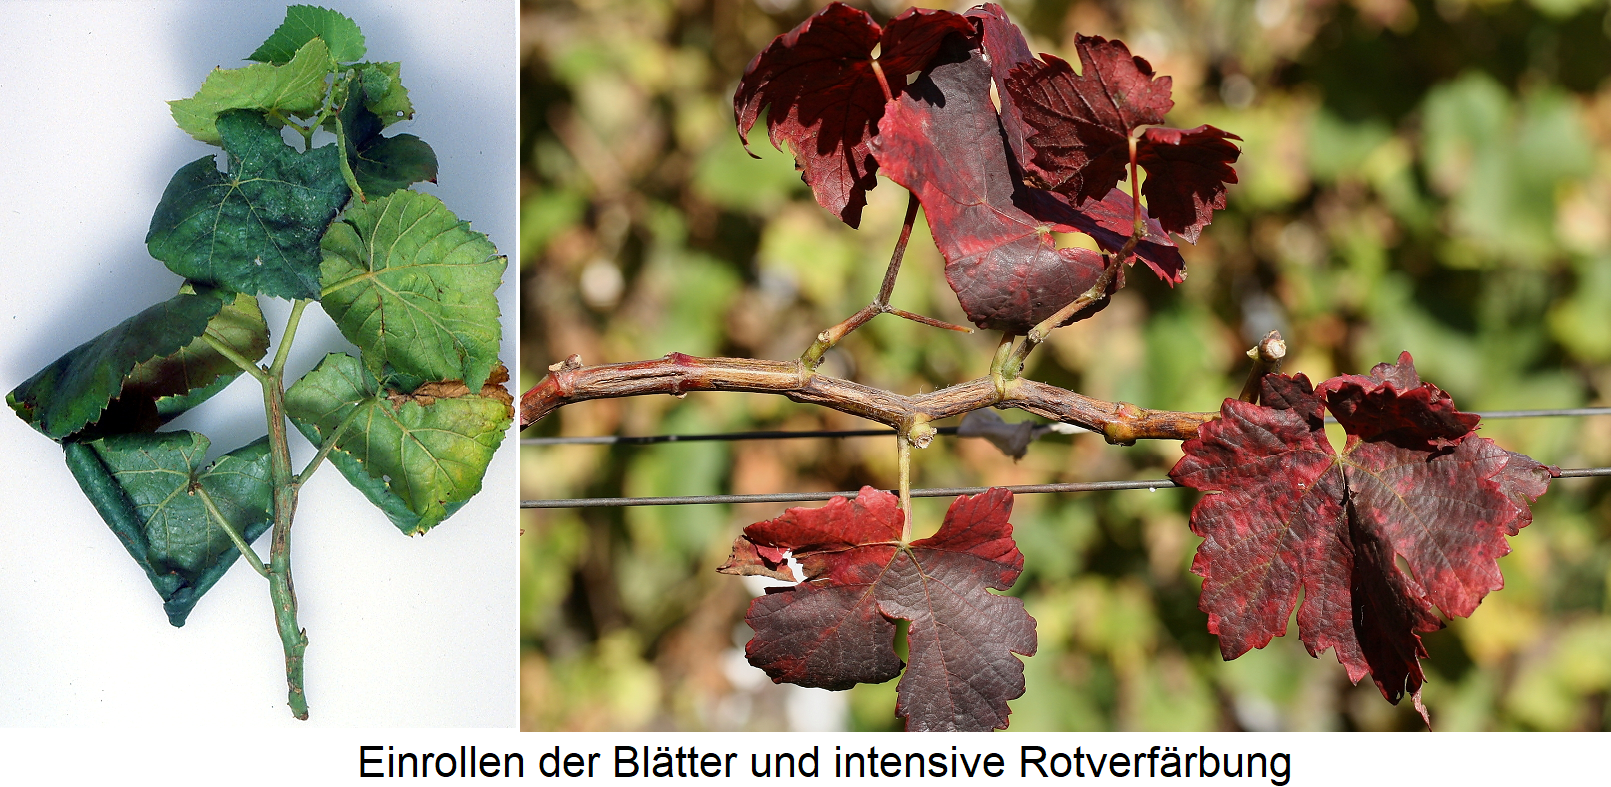 Rugose Wood Complex - Symptoms Leaves with curl and red color